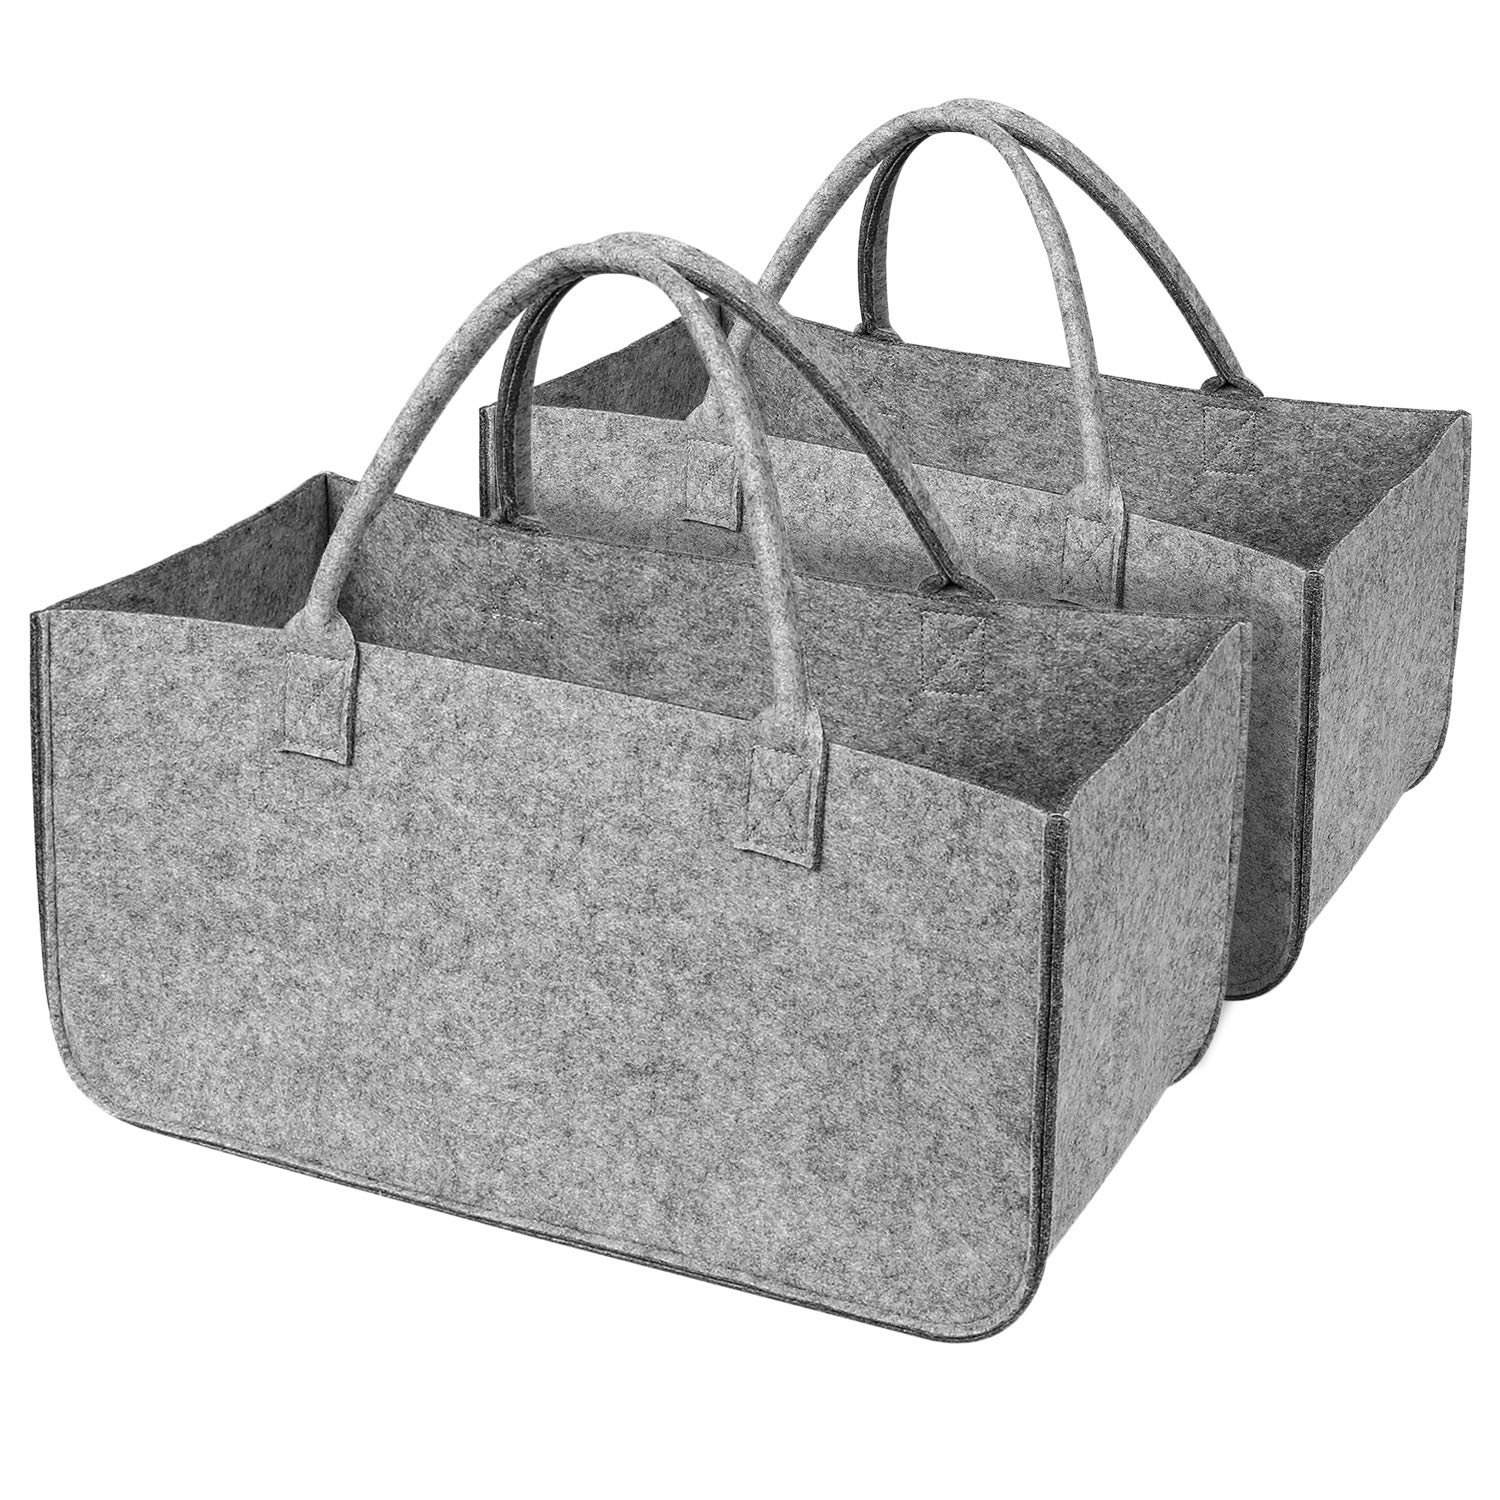 square felt kitchen Firewood basket.jpg